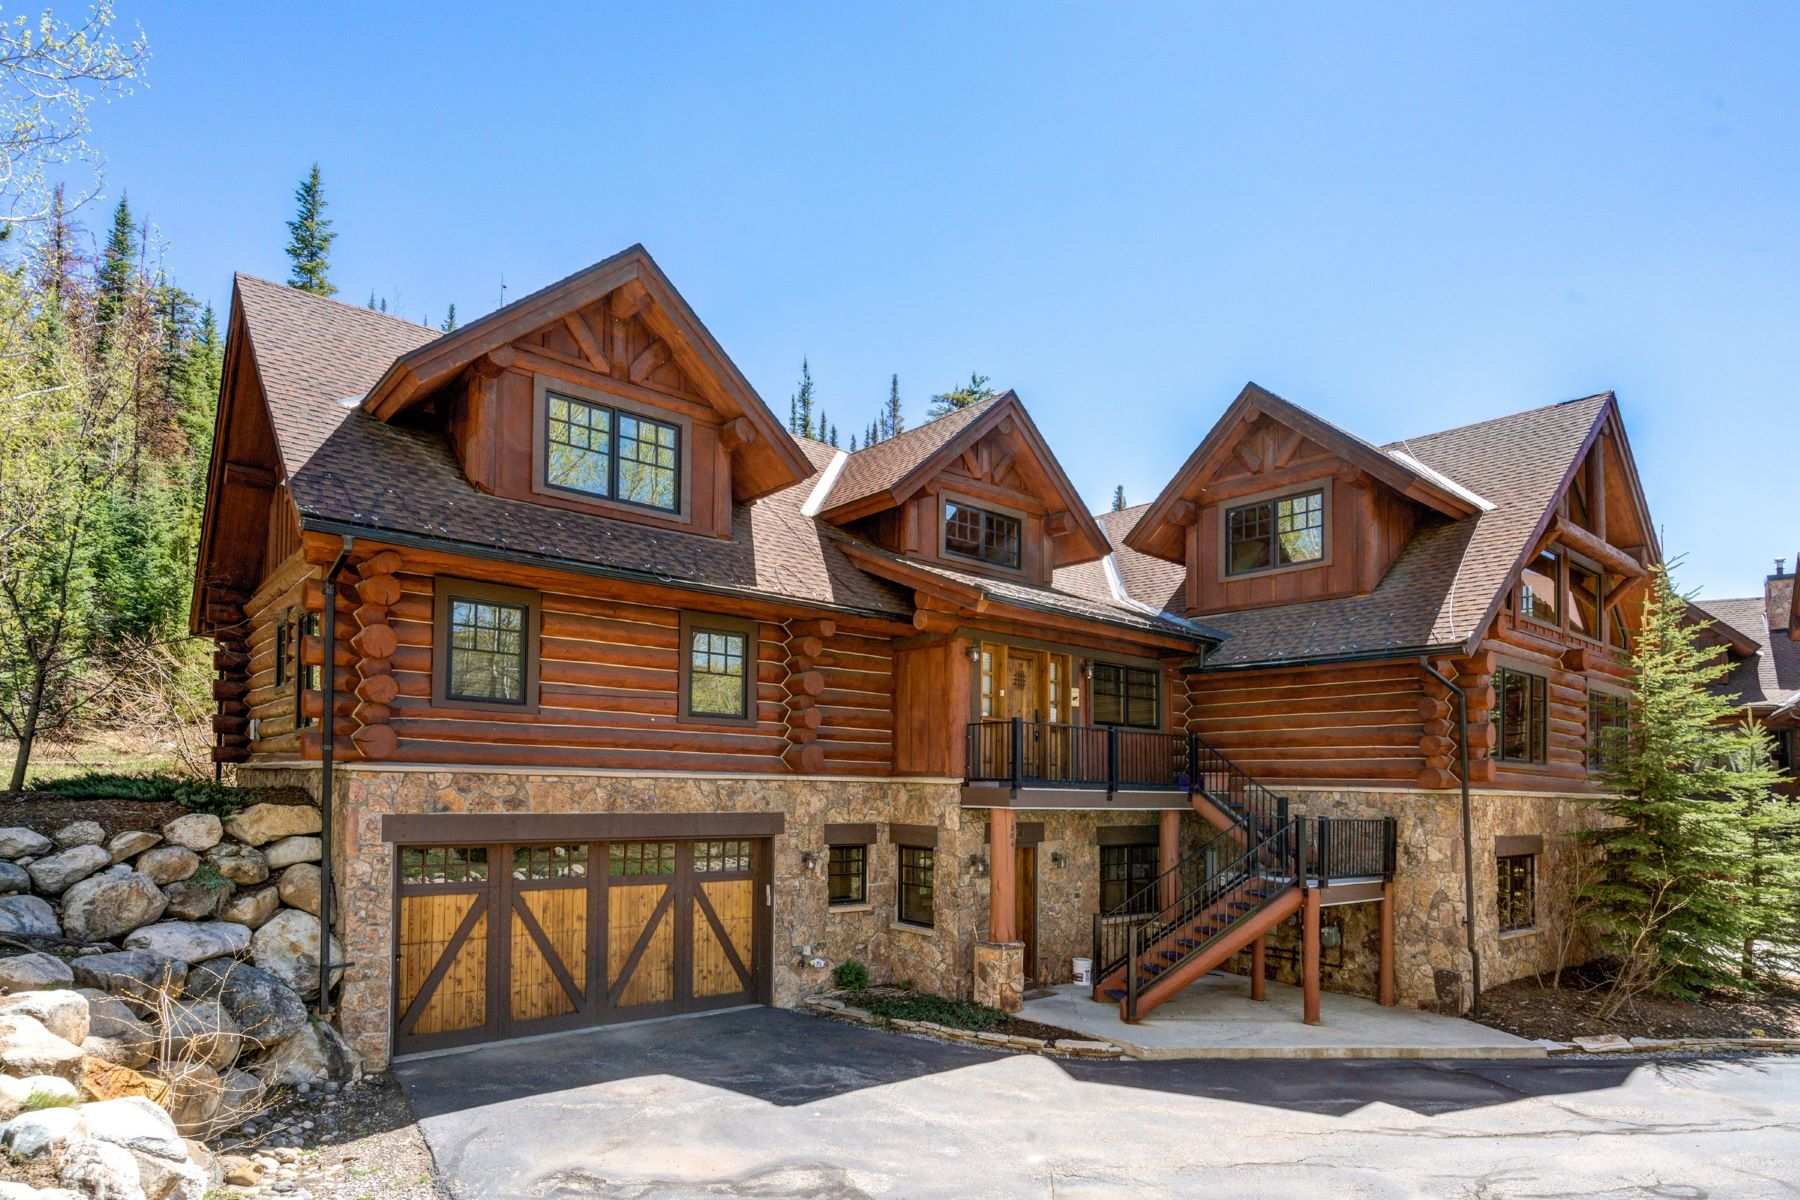 Single Family Home for Sale at Lodges on Burgess Creek 1806 Stonecreek Court Steamboat Springs, Colorado 80487 United States